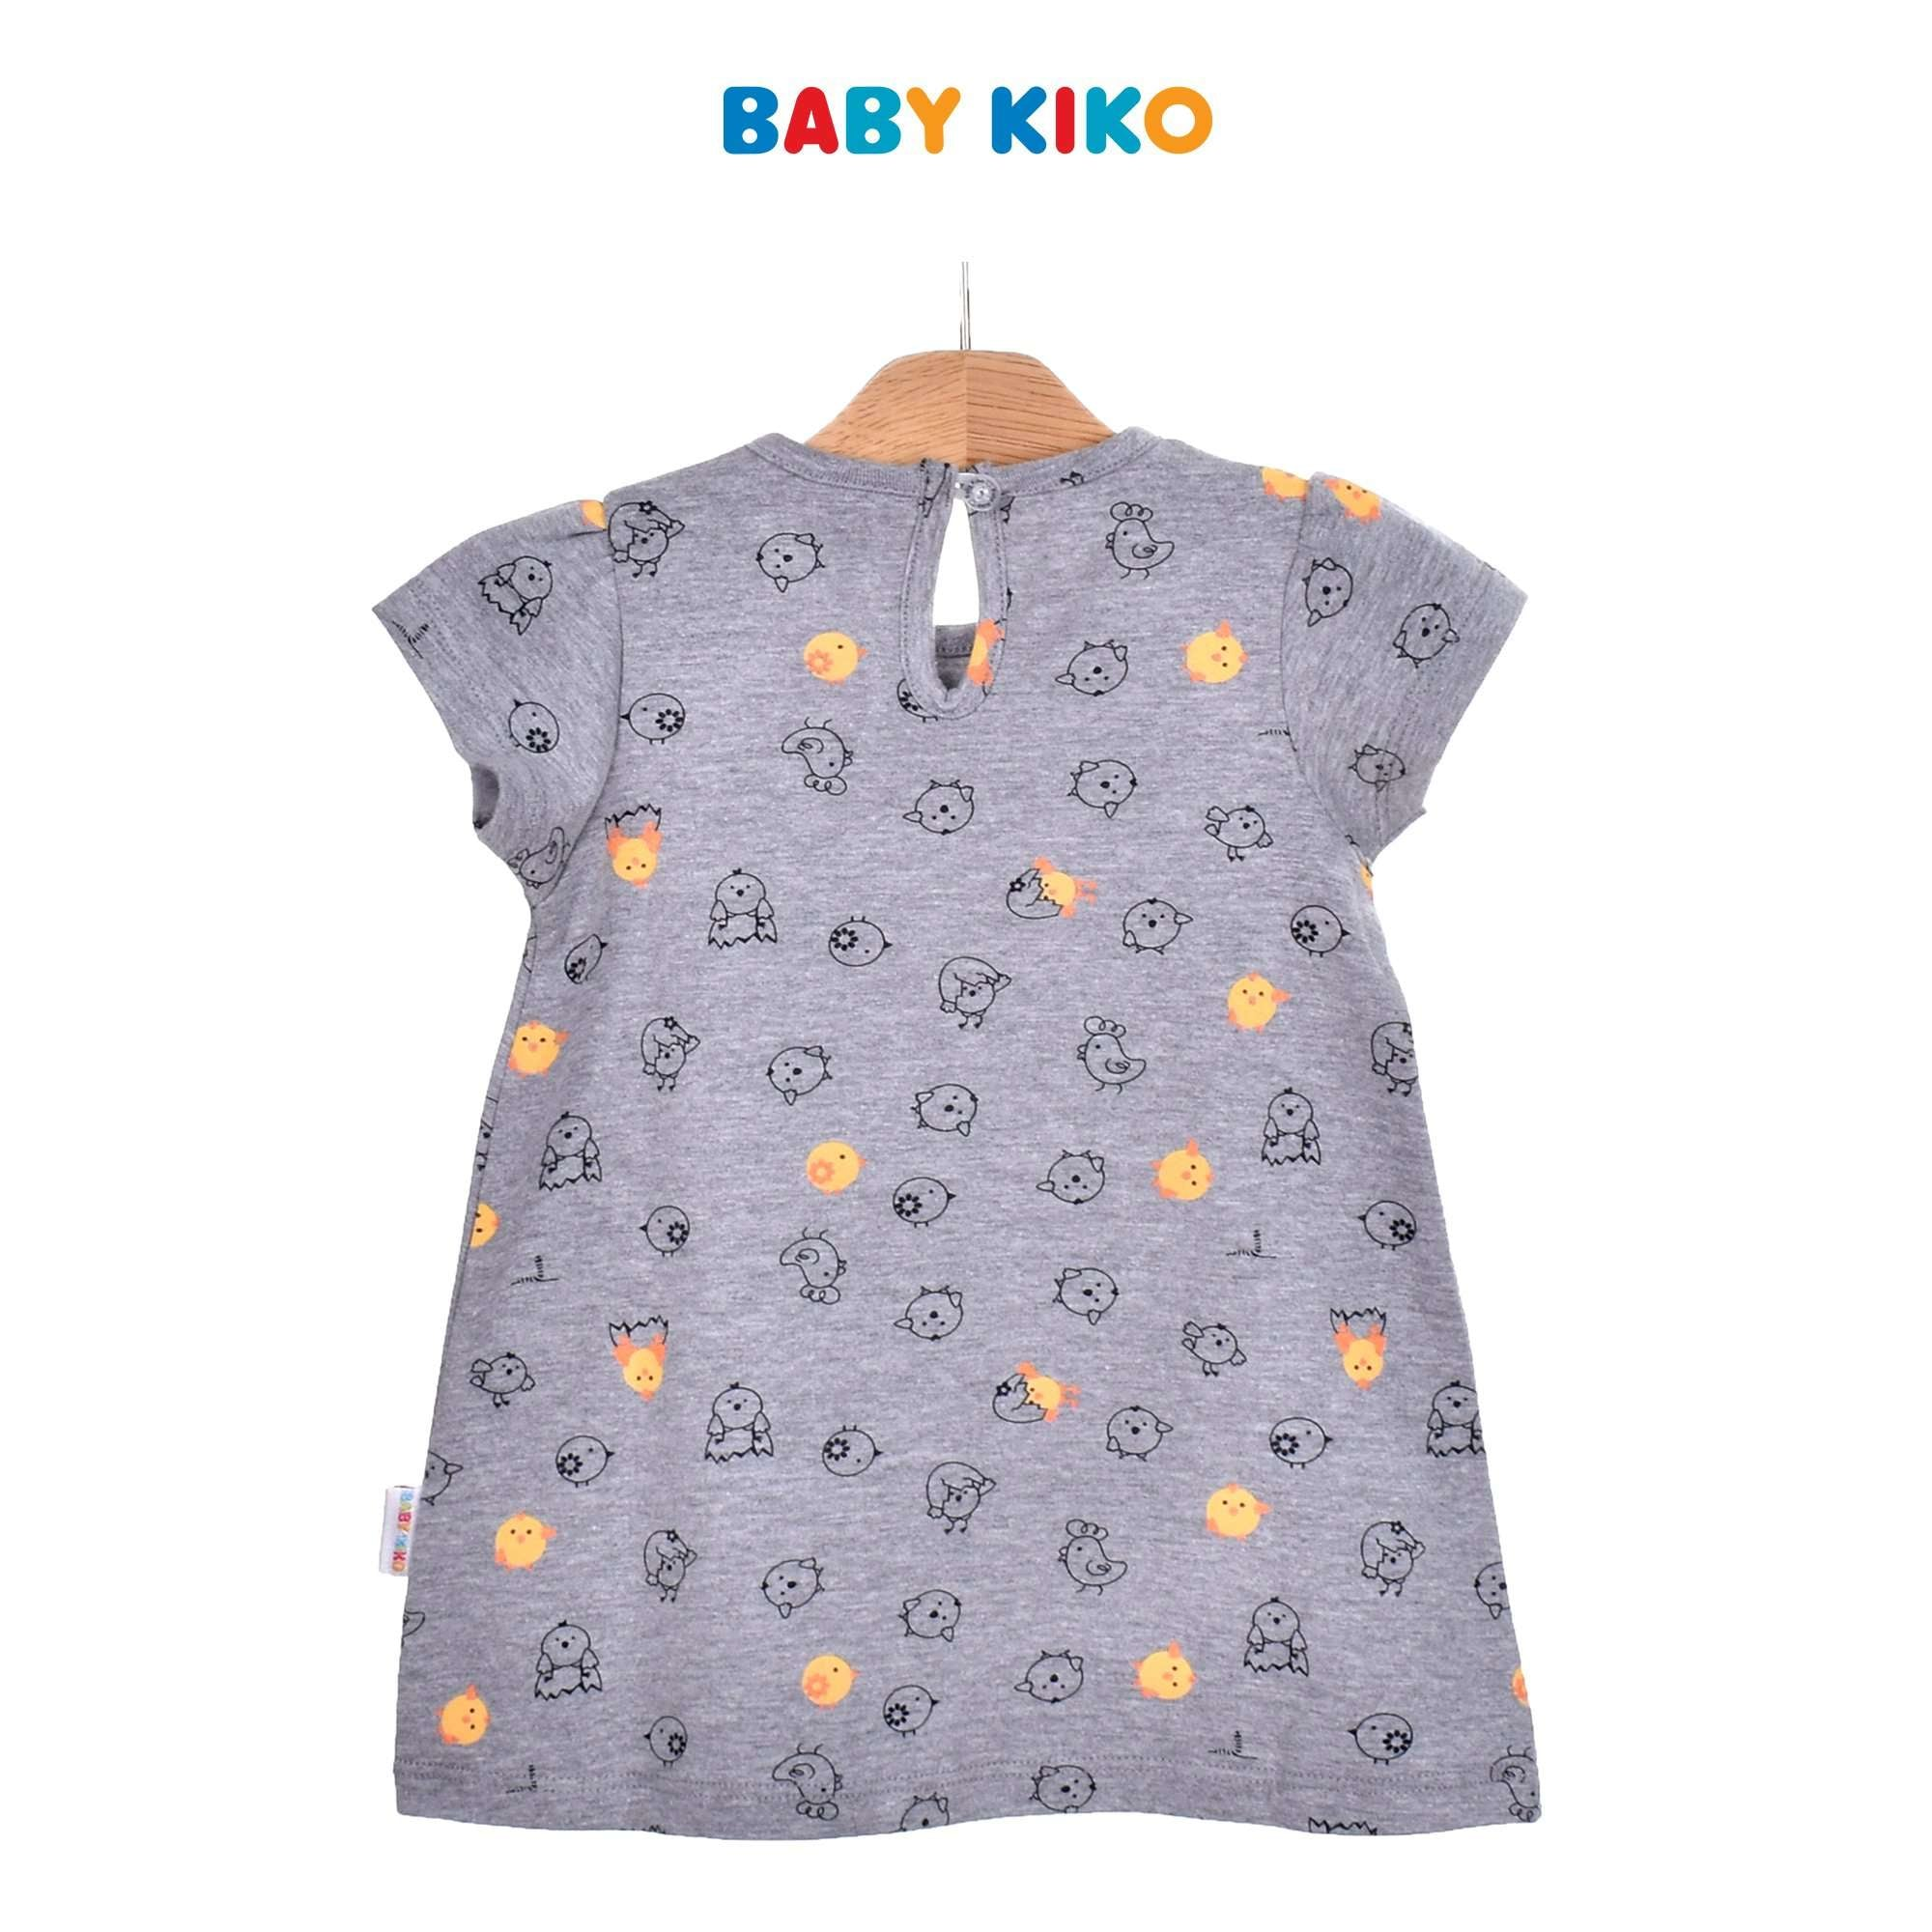 Baby KIKO Baby Girl Short Sleeve Dress-Melange 320194-332 : Buy Baby KIKO online at CMG.MY